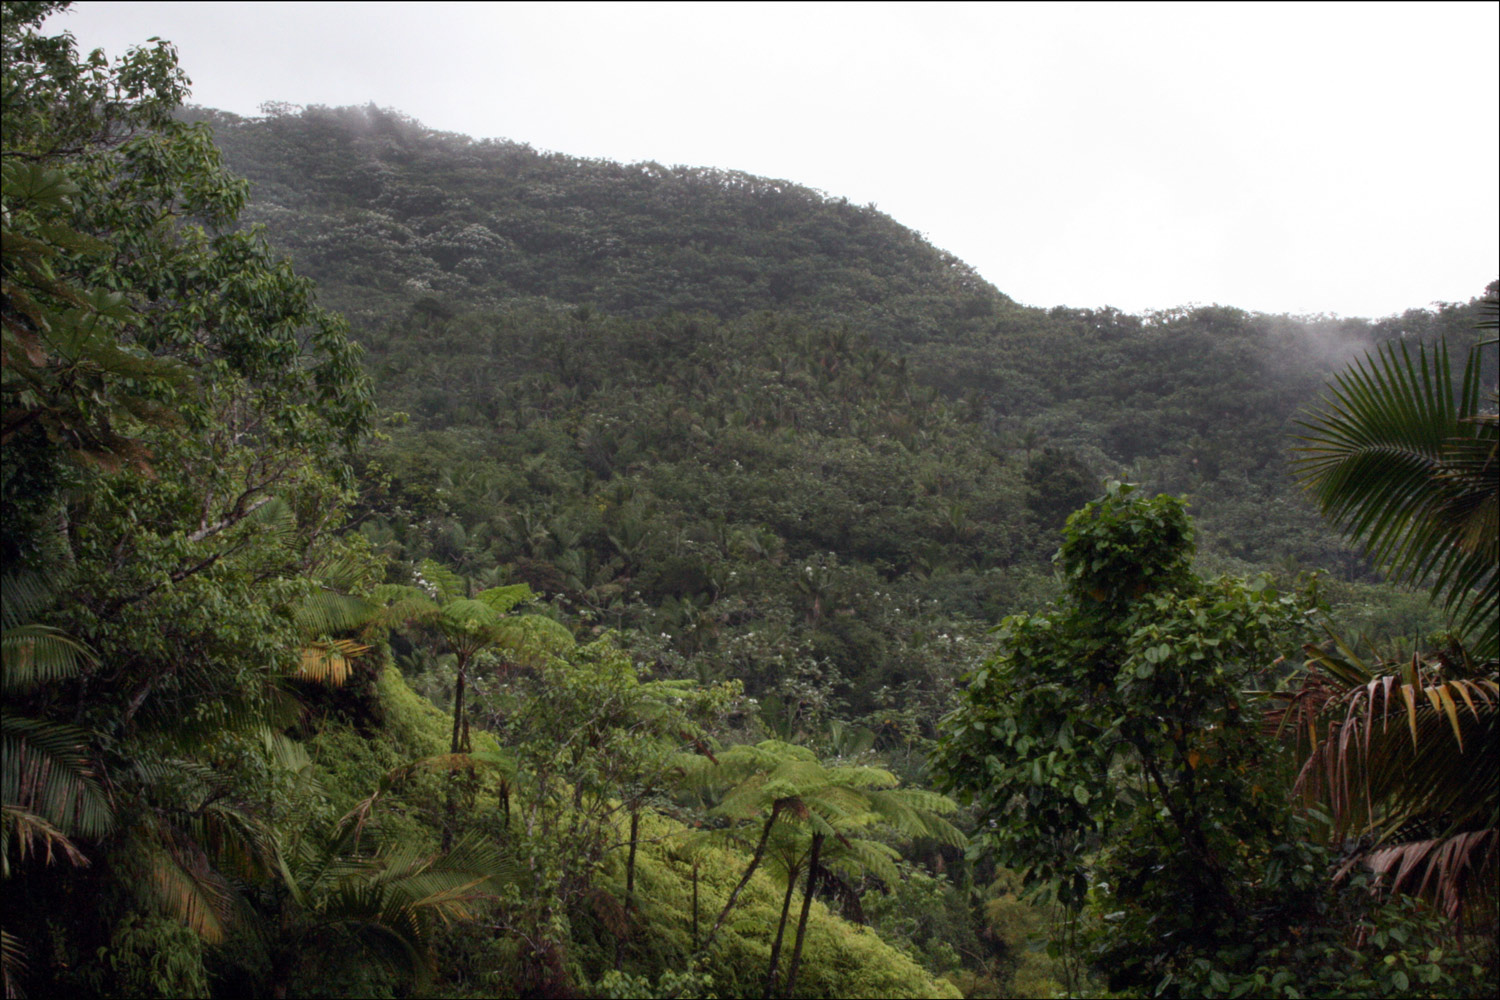 Vista of El Yunque Rainforest - 2